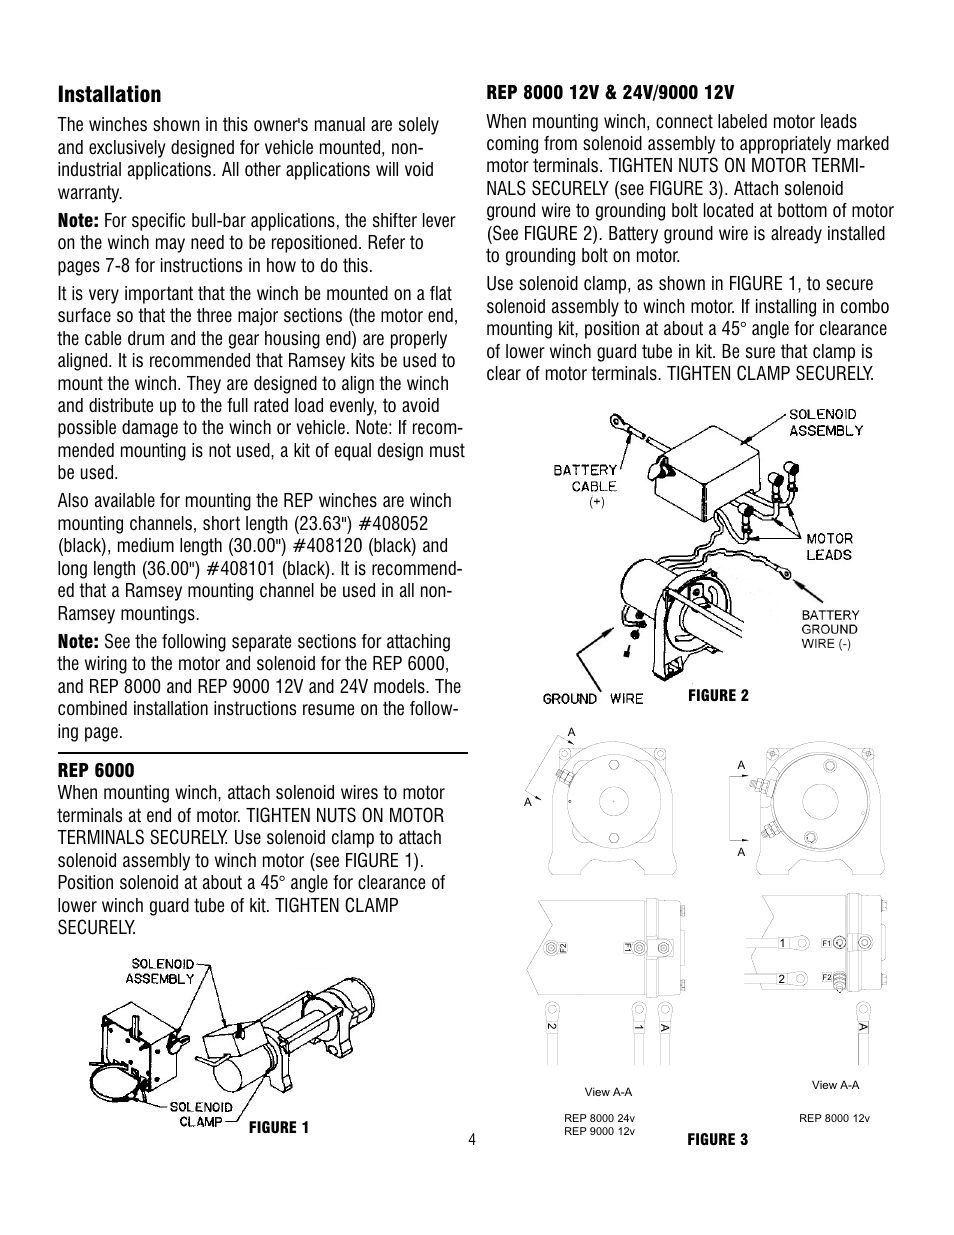 ramsey winch rep 6000_8000_9000 current page4 installation ramsey winch rep 6000 8000 9000 current user manual ramsey winch motor wiring diagram at n-0.co